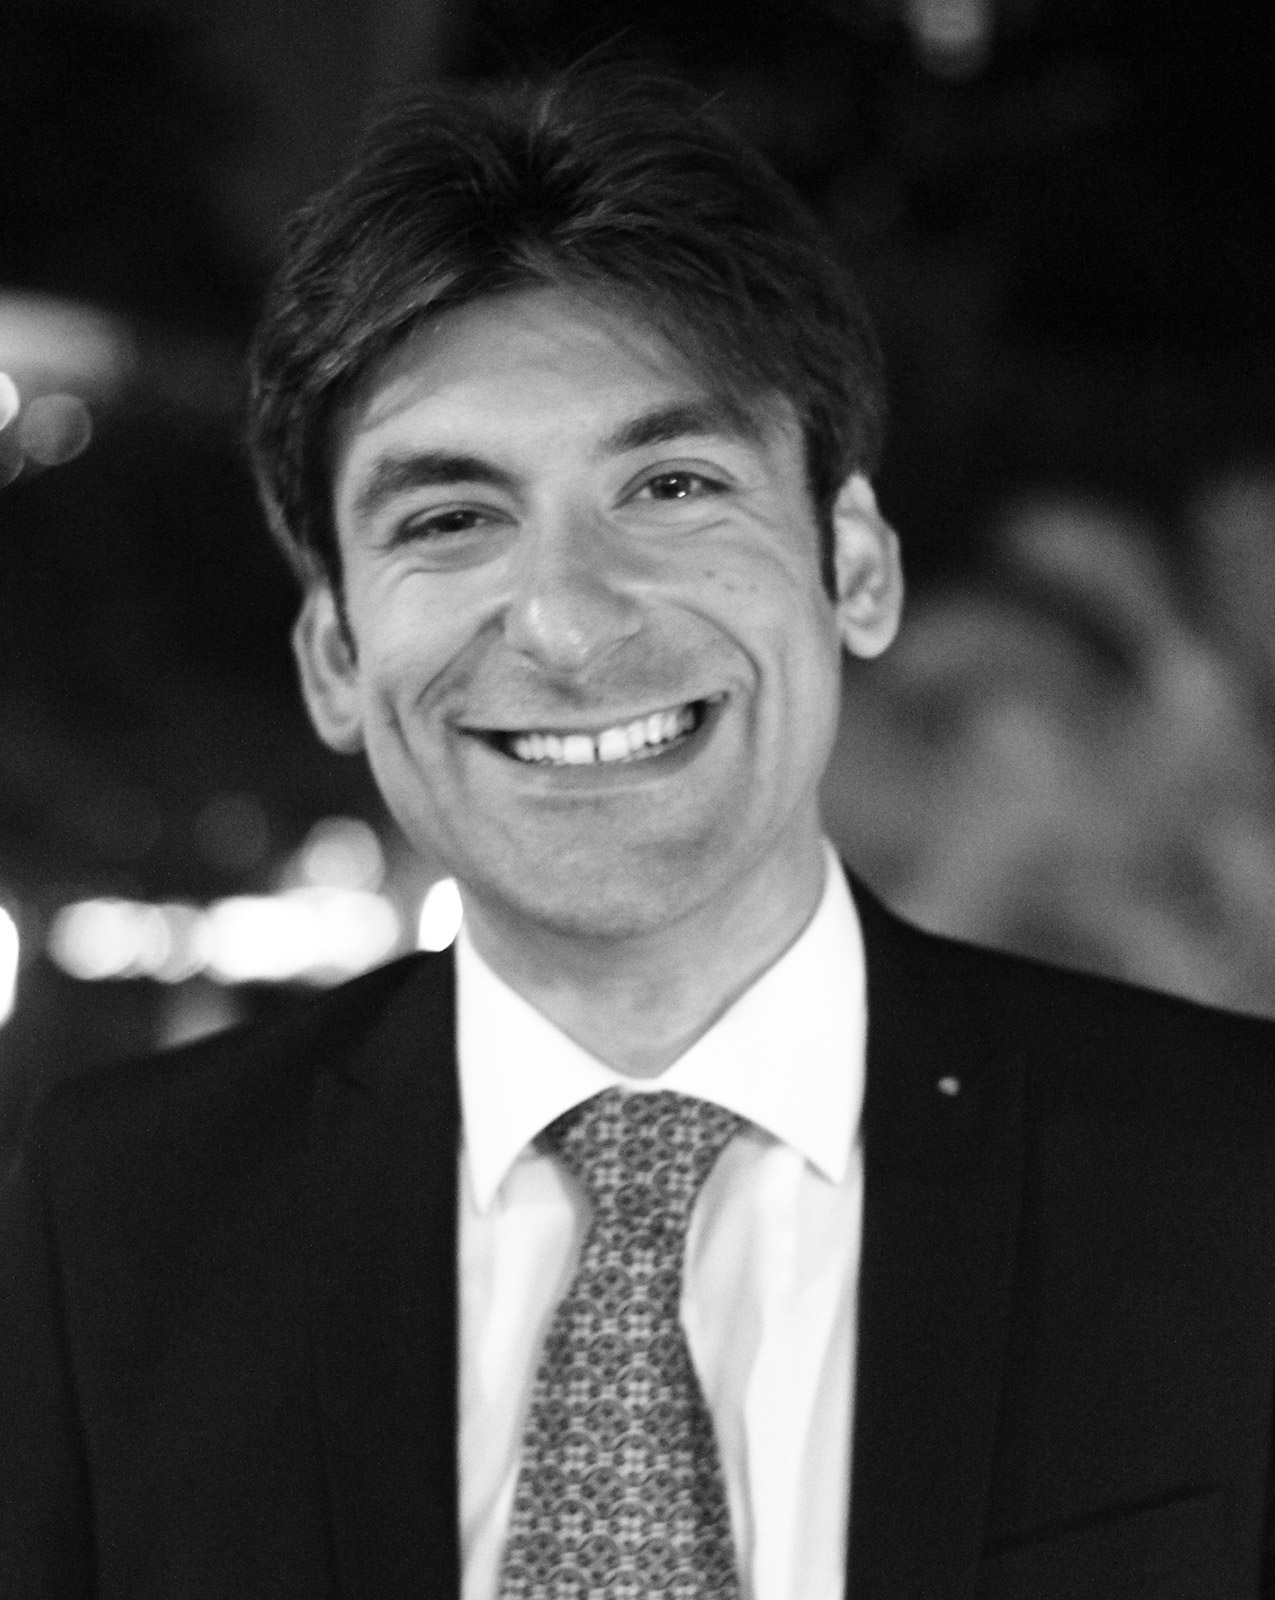 Alessio Parrino ist neuer Category & Trade Marketing Director bei Groupe SEB Deutschland.